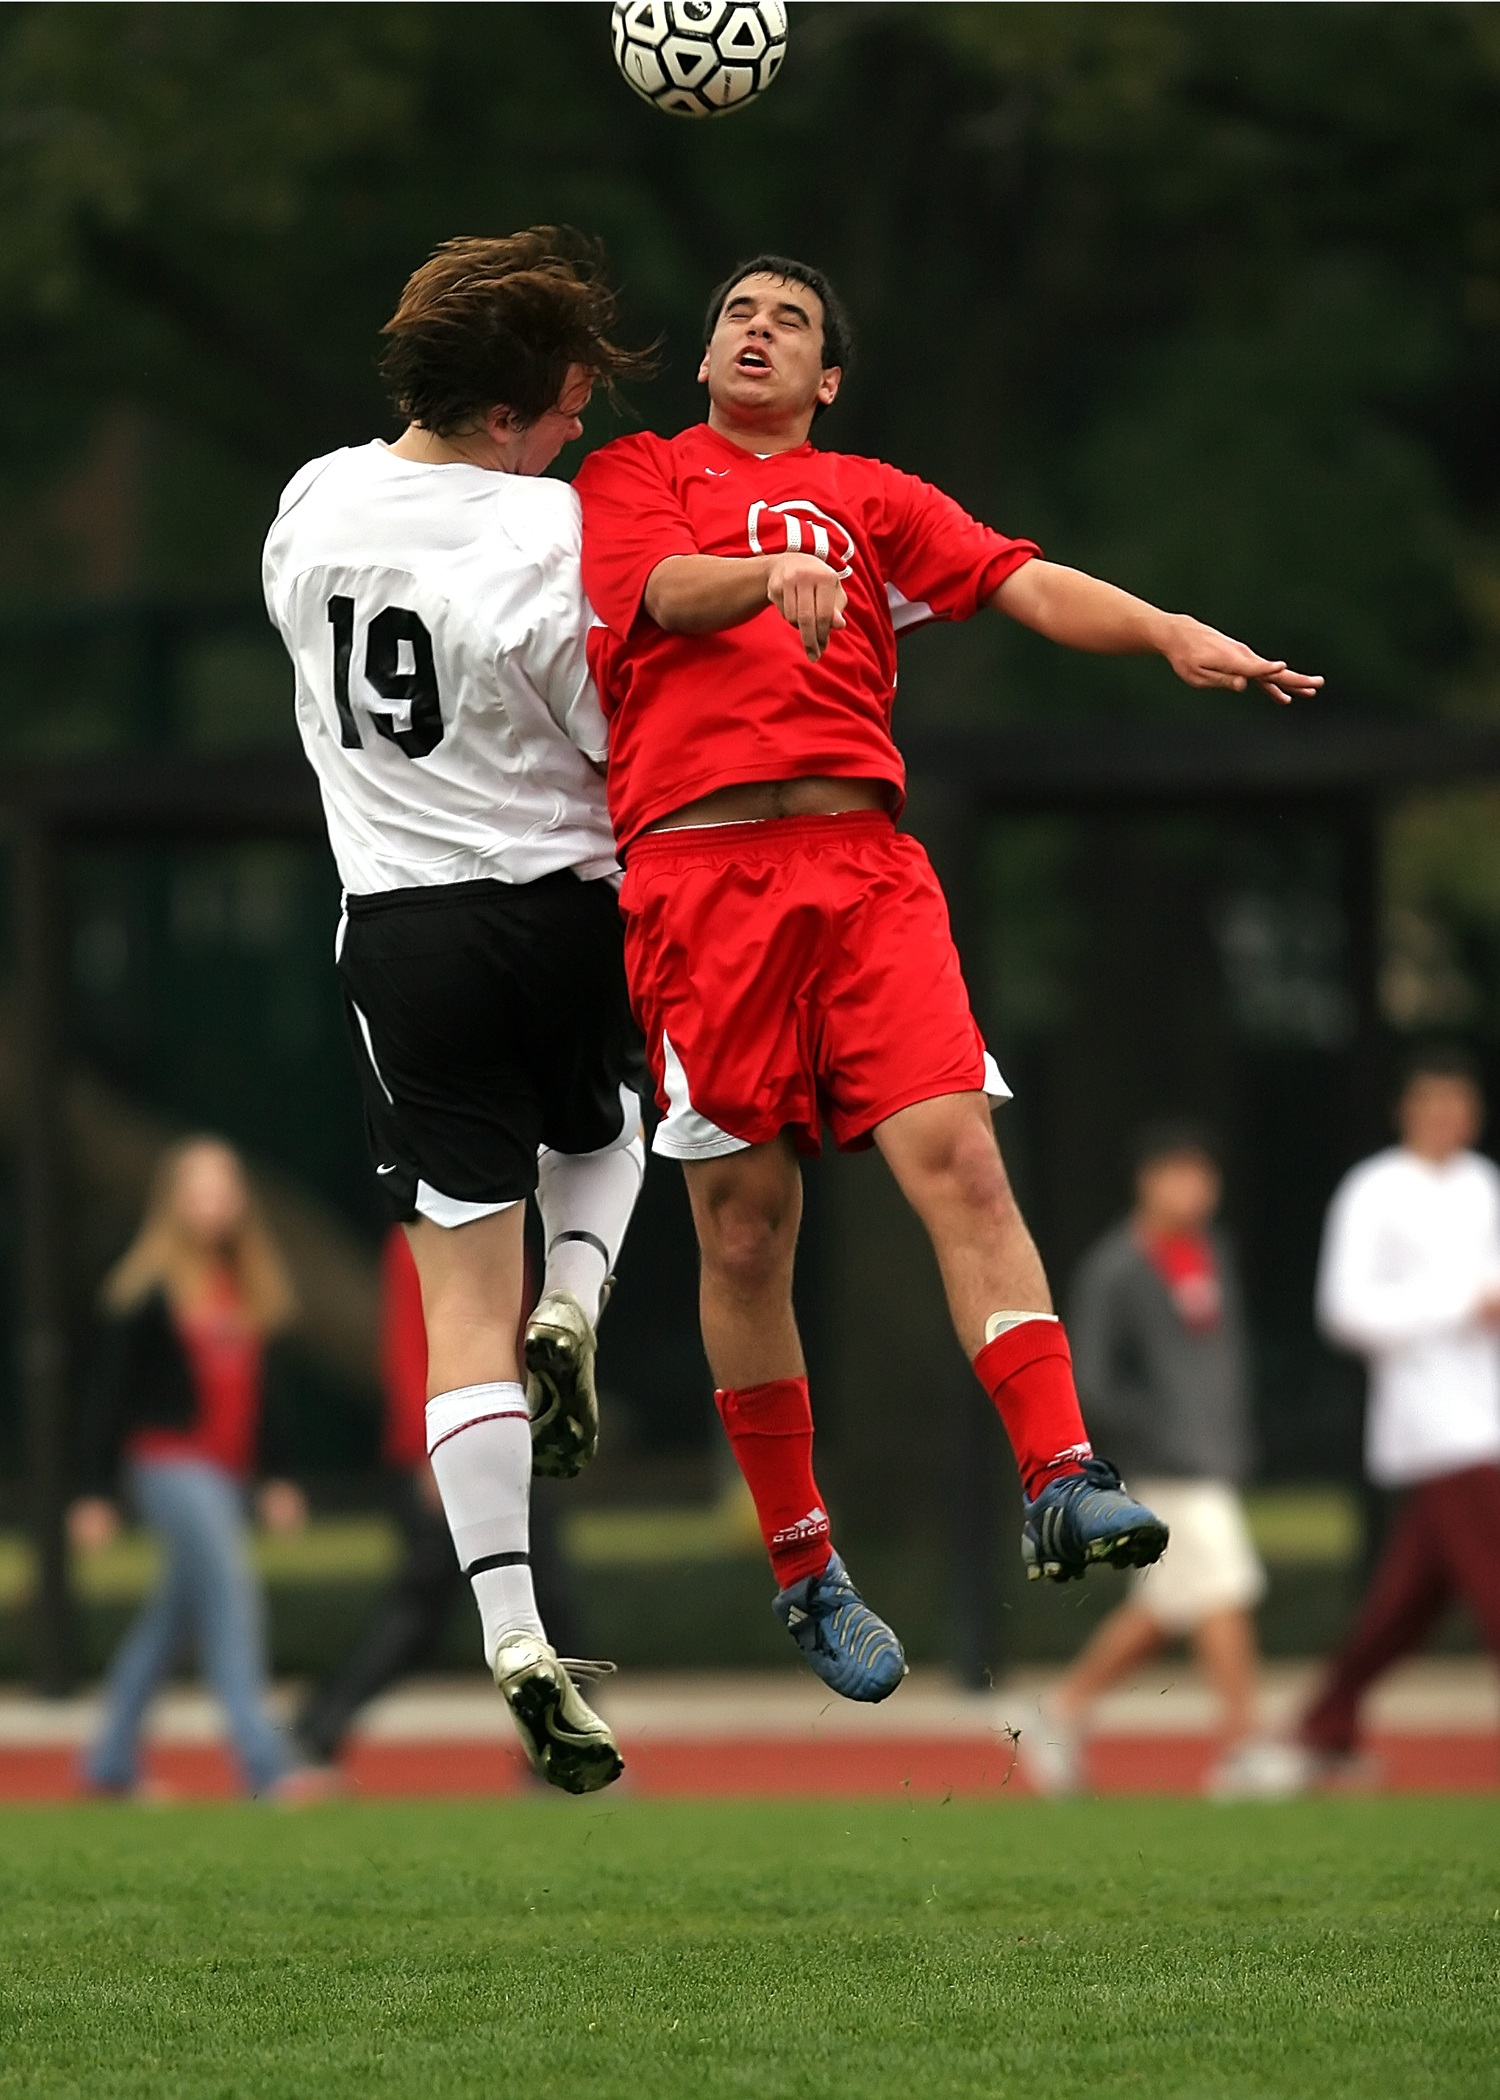 Tips for Sports Photography Beginners